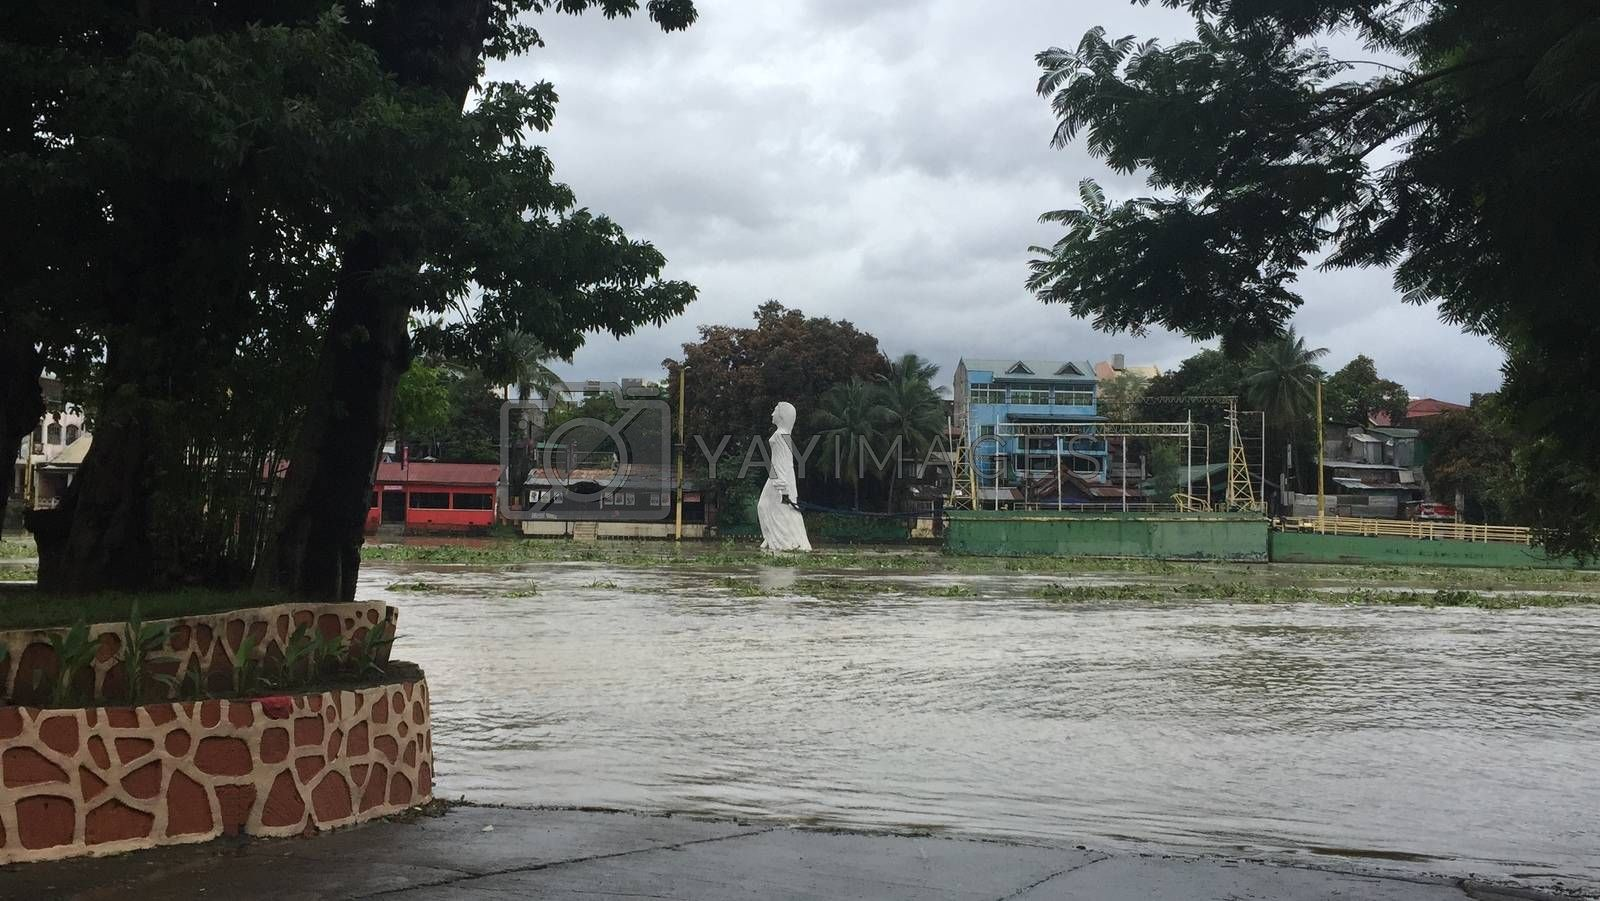 PHILIPPINES, Marikina: Marikina river overflows on October 18, 2015 in Marikina, in Philippines. Heavy rain deepened flood misery in farming and mountainous regions of the northern Philippines October 20, after the latest typhoon to hit the storm-ravaged nation killed at least 22 people.